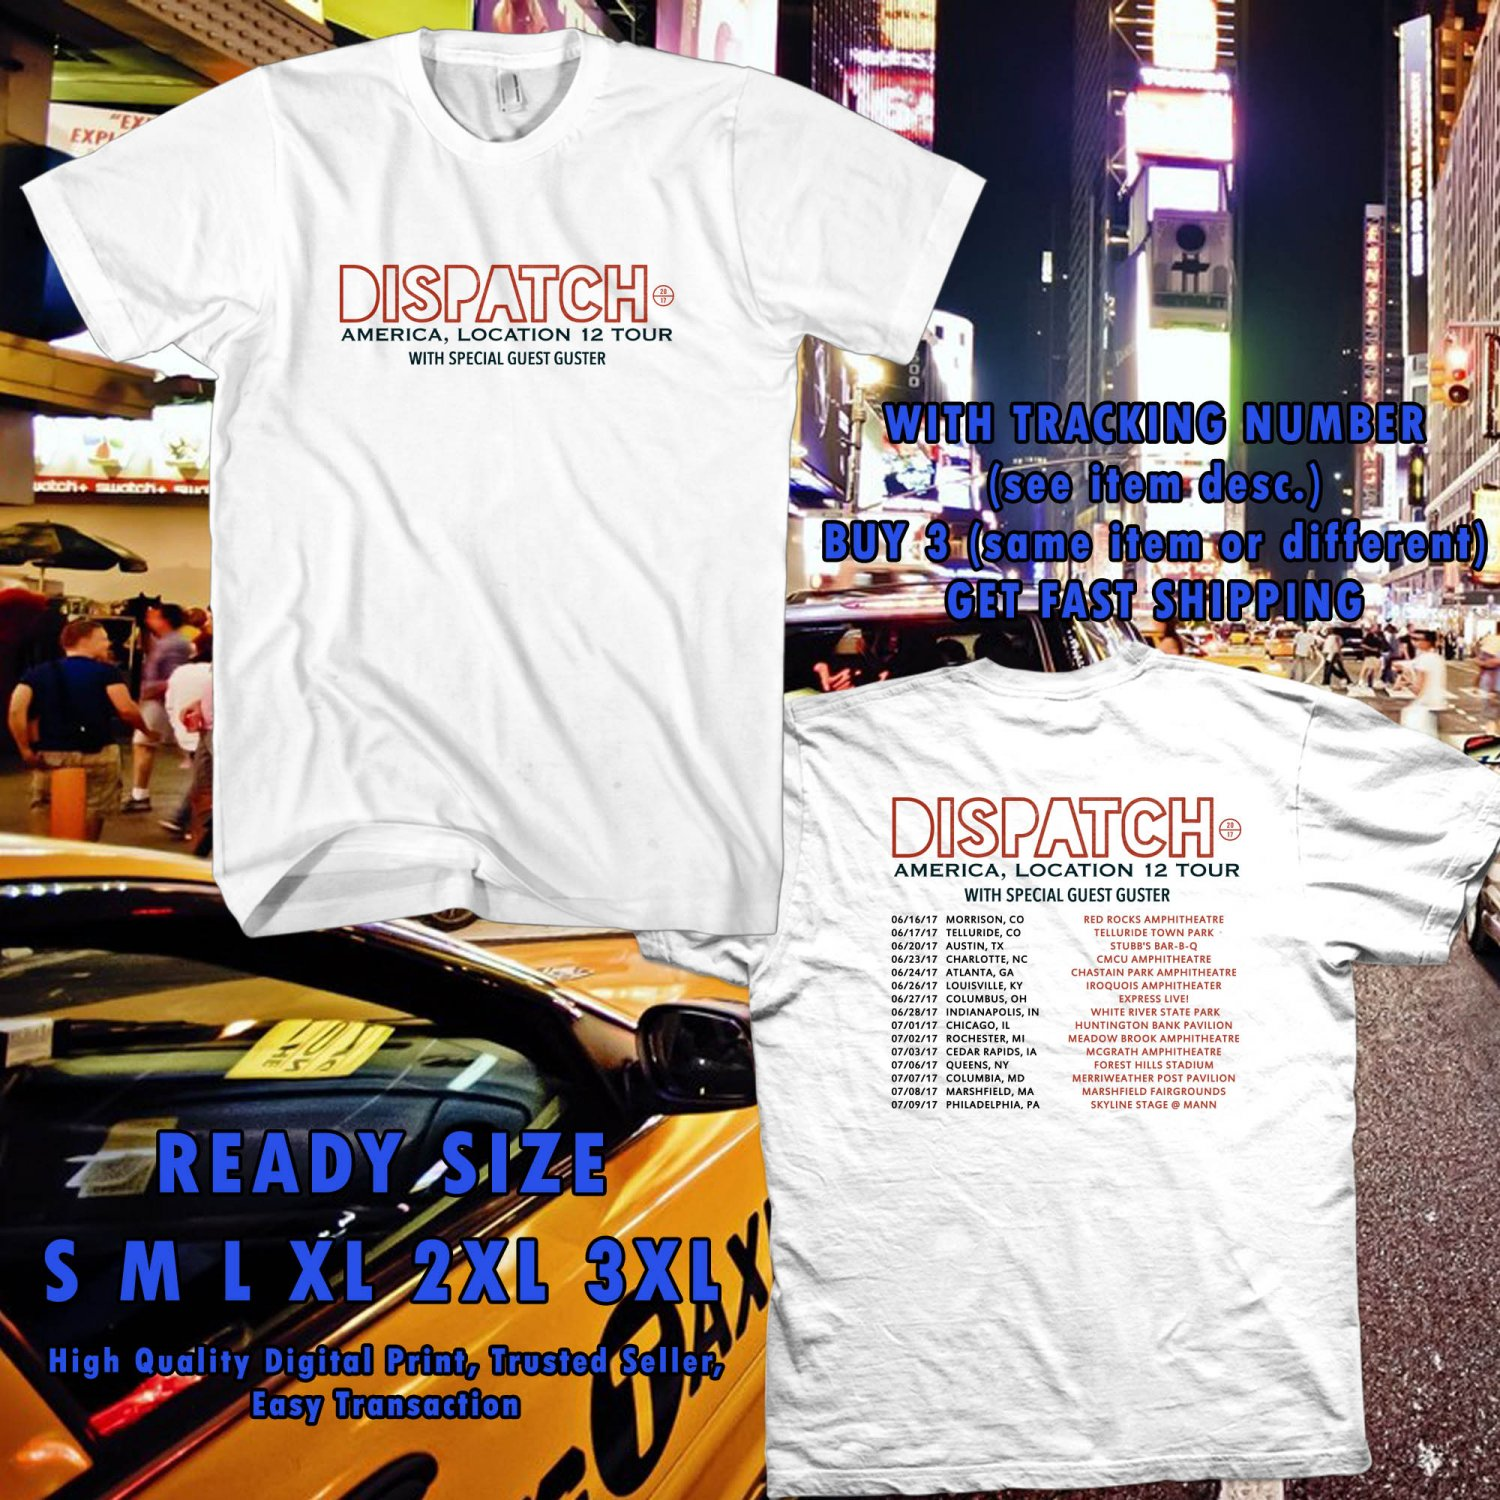 NEW DISPATCH BAND TOUR 2017 WHITE TEE W DATES DMTR